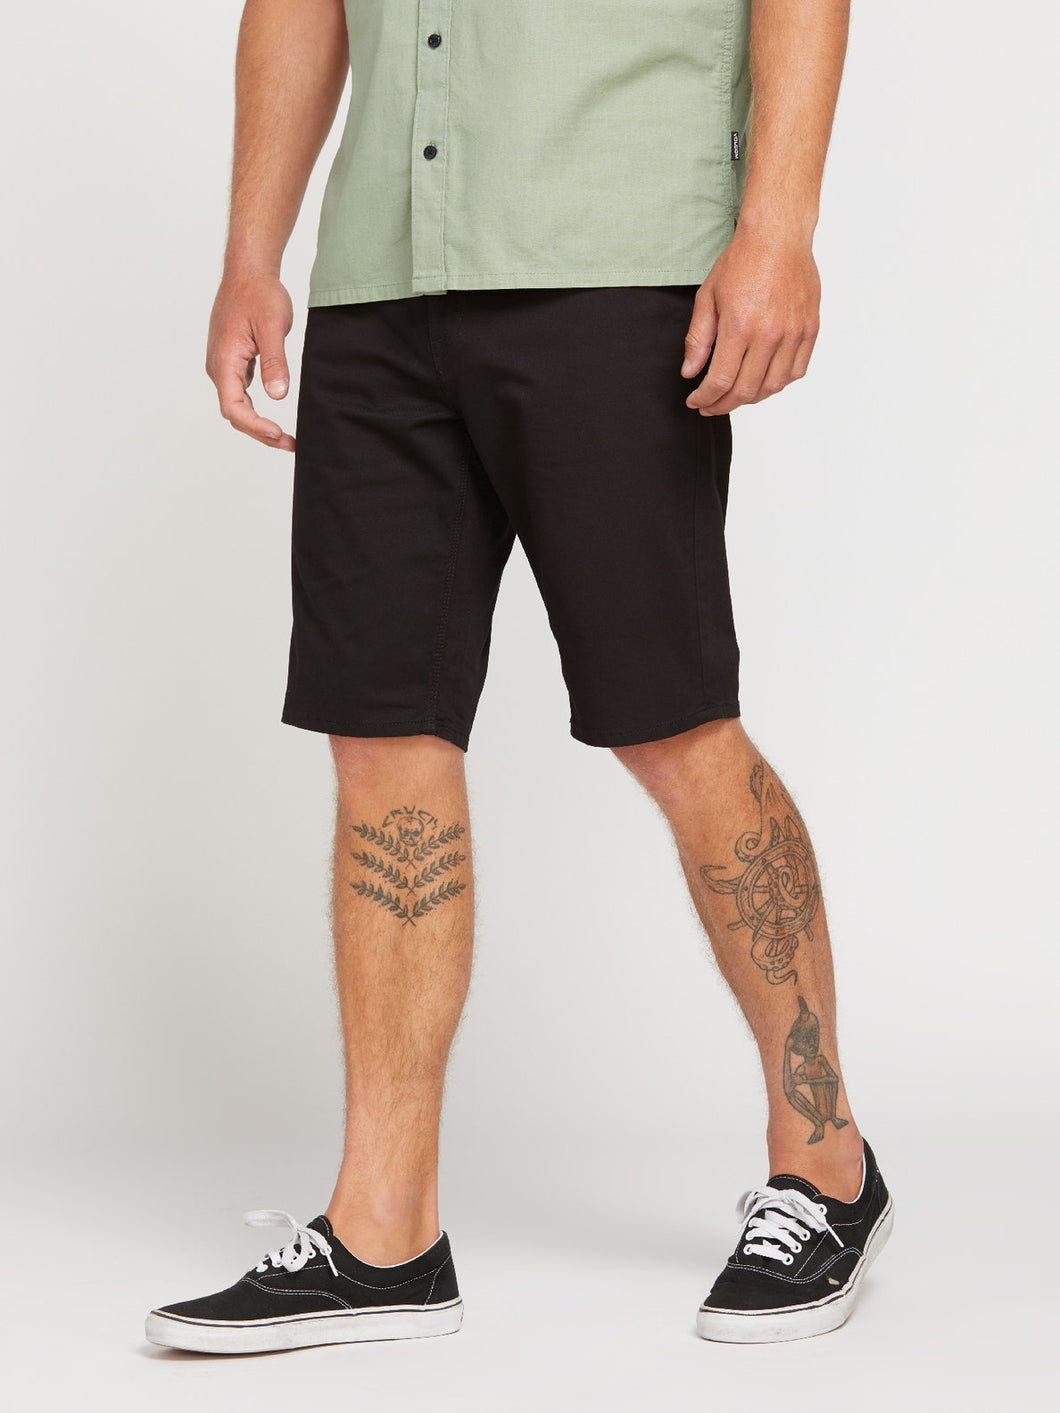 SOLVER LITE 5 POCKET SHORT - BLK